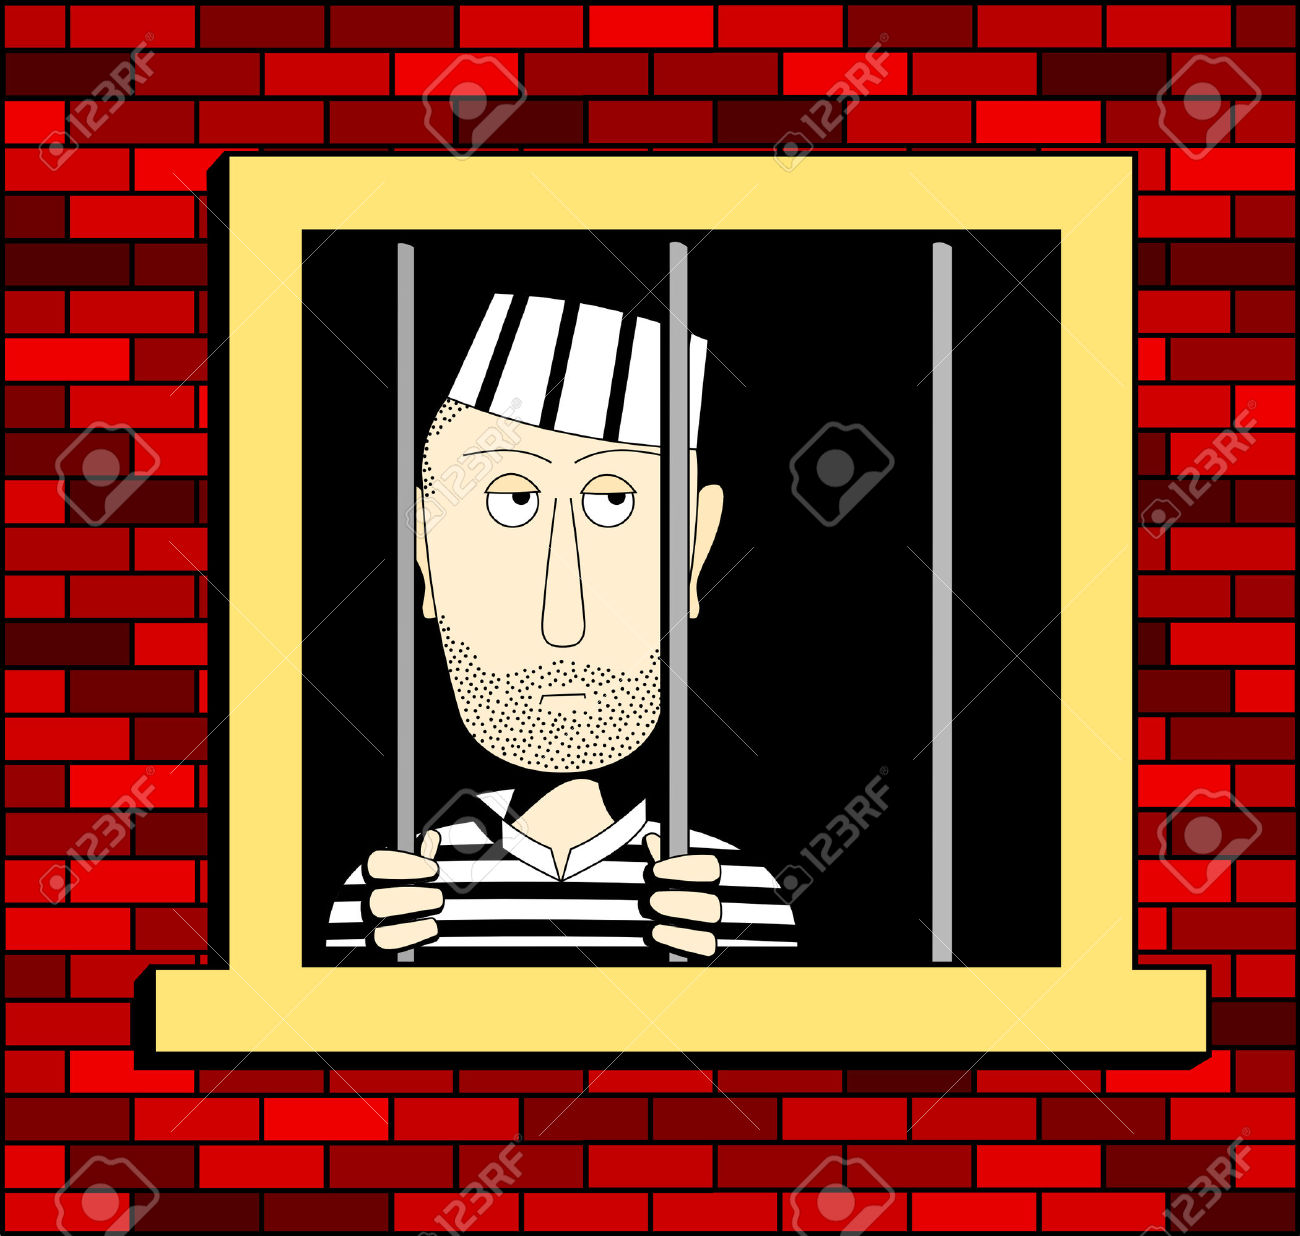 Prisoner In The Barred Window, Illustrated In A Square Format.